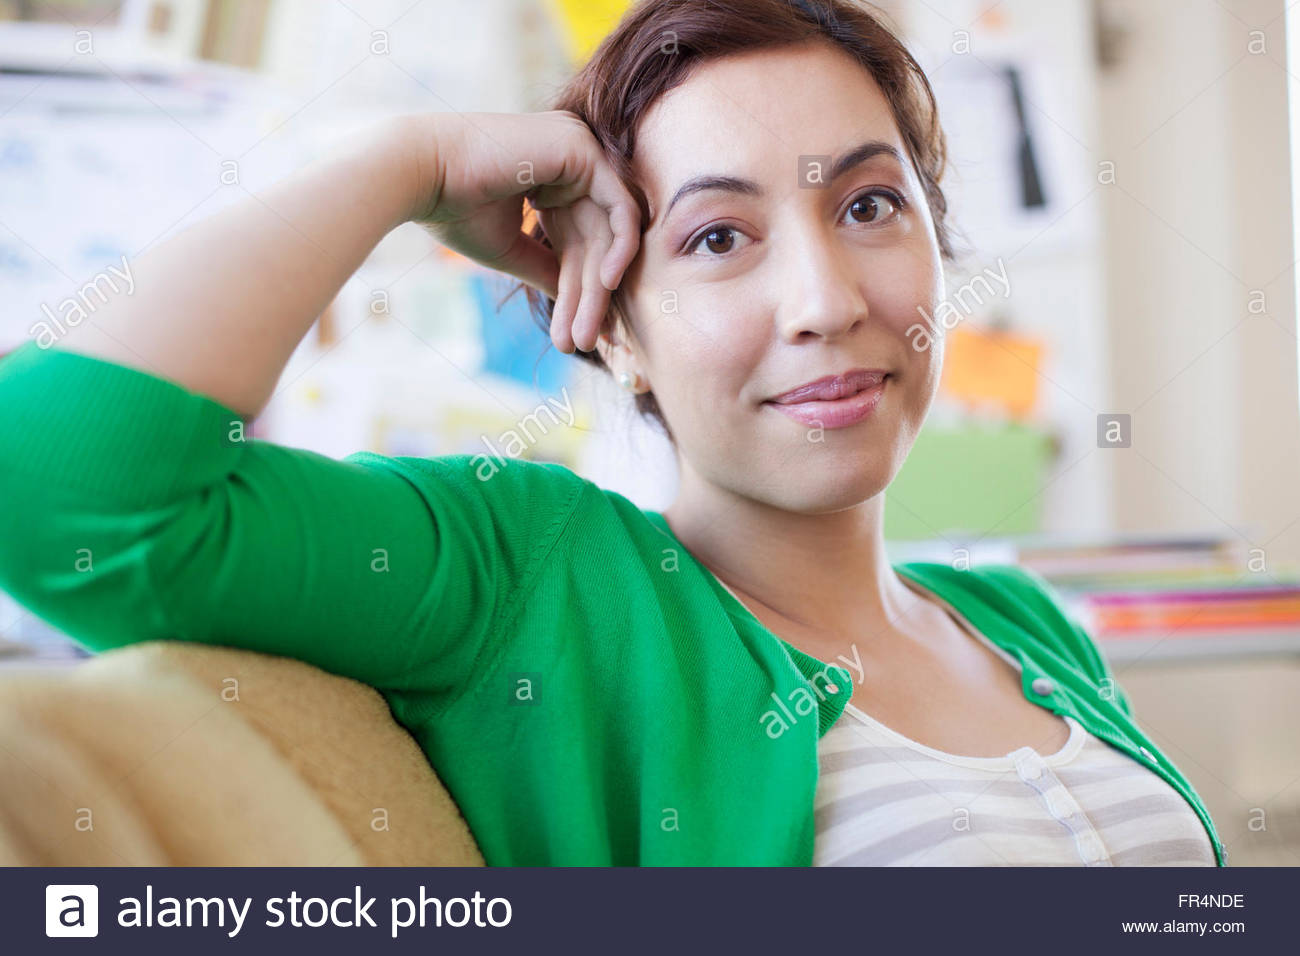 pretty, creative professional relaxing at office - Stock Image